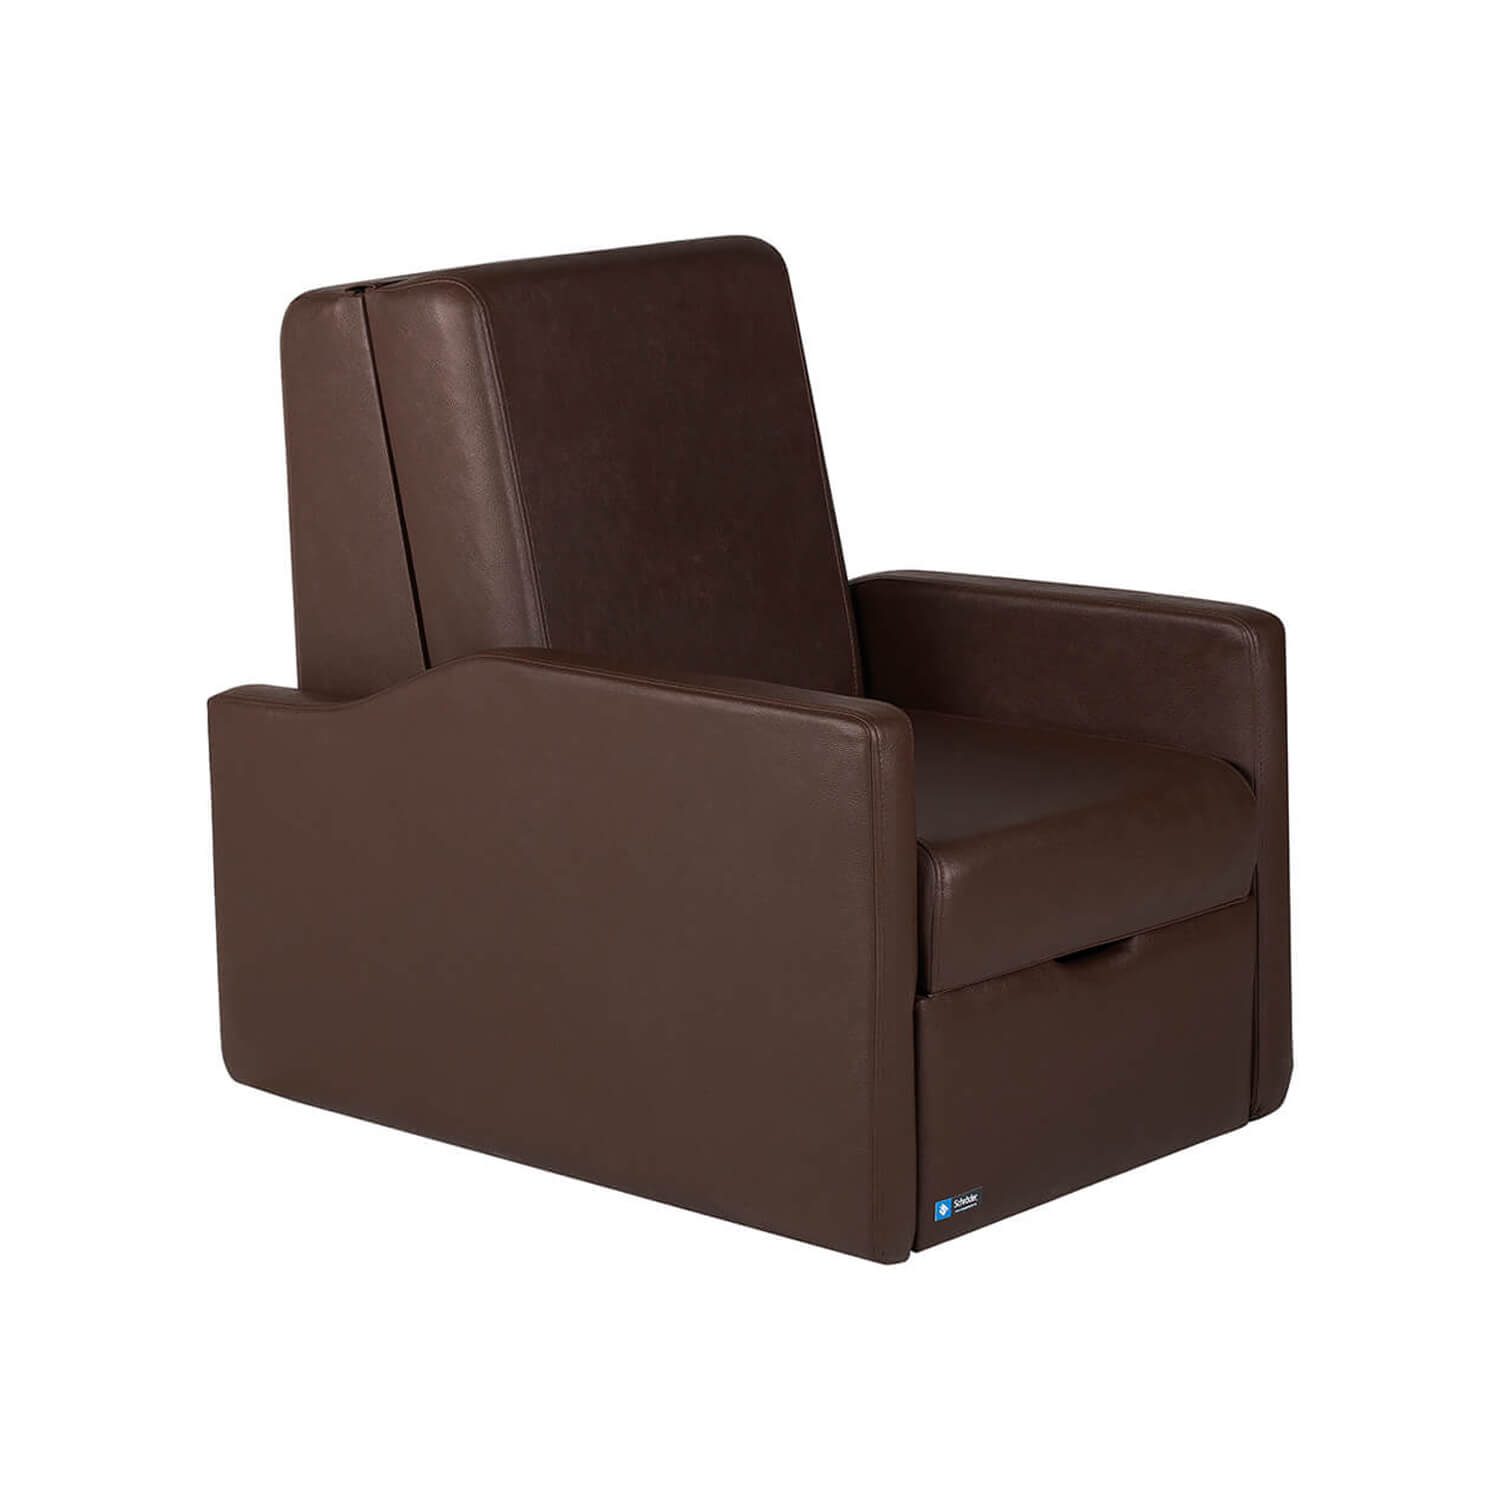 Attendant Couch